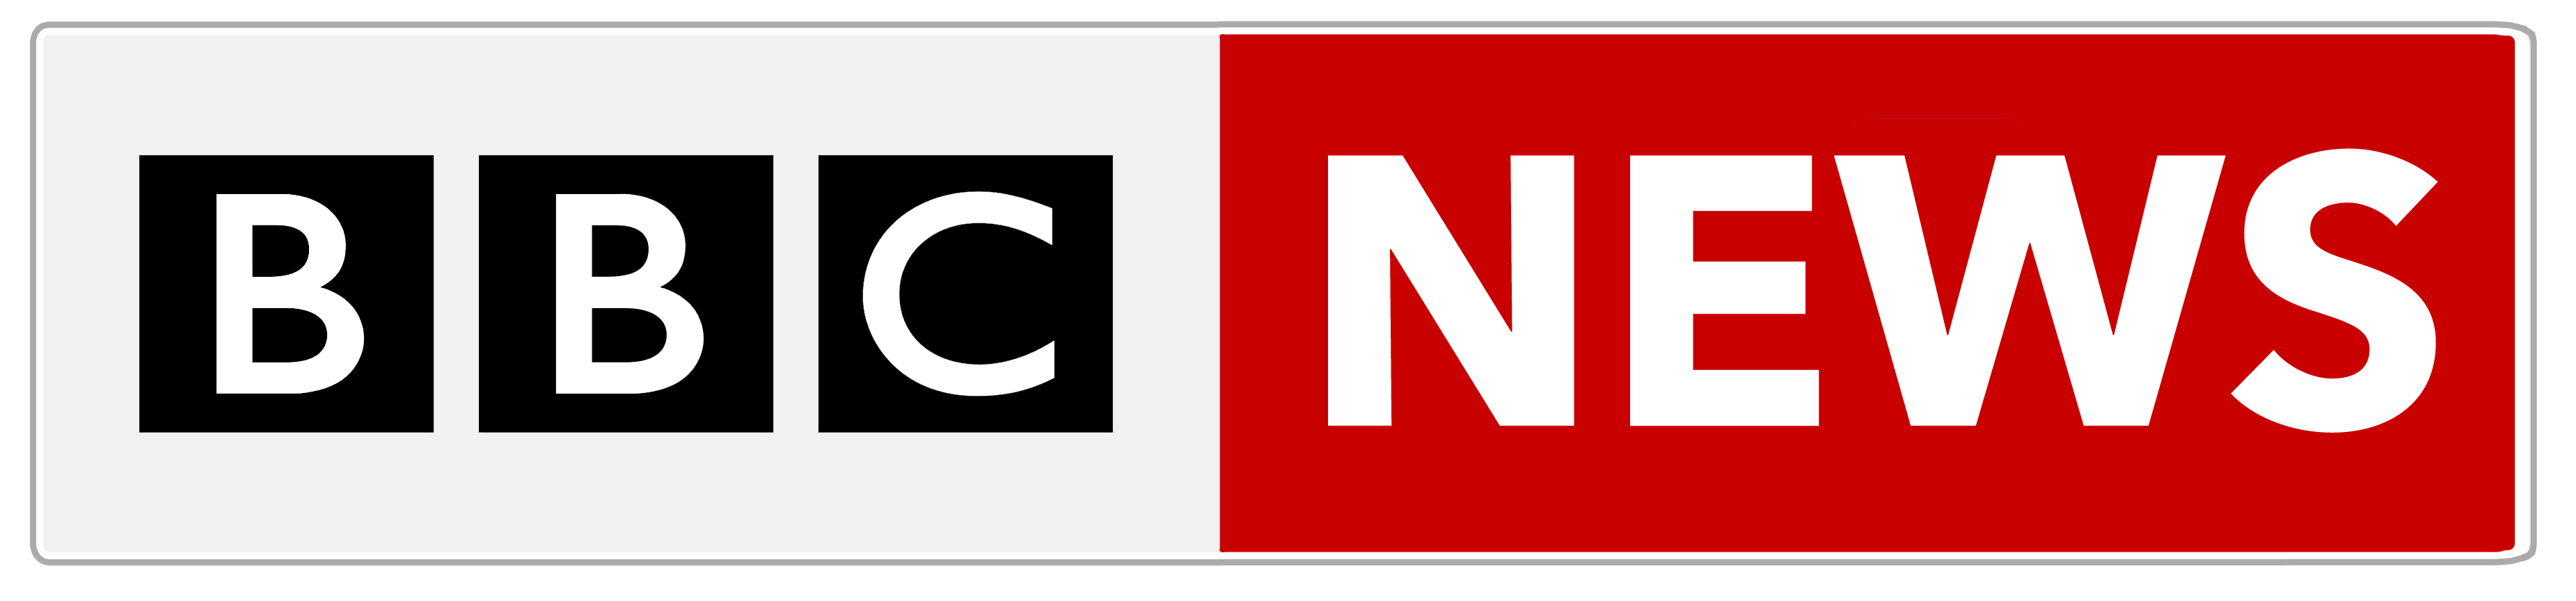 Bbc News Png Free Bbc News Png Transparent Images 99492 Pngio